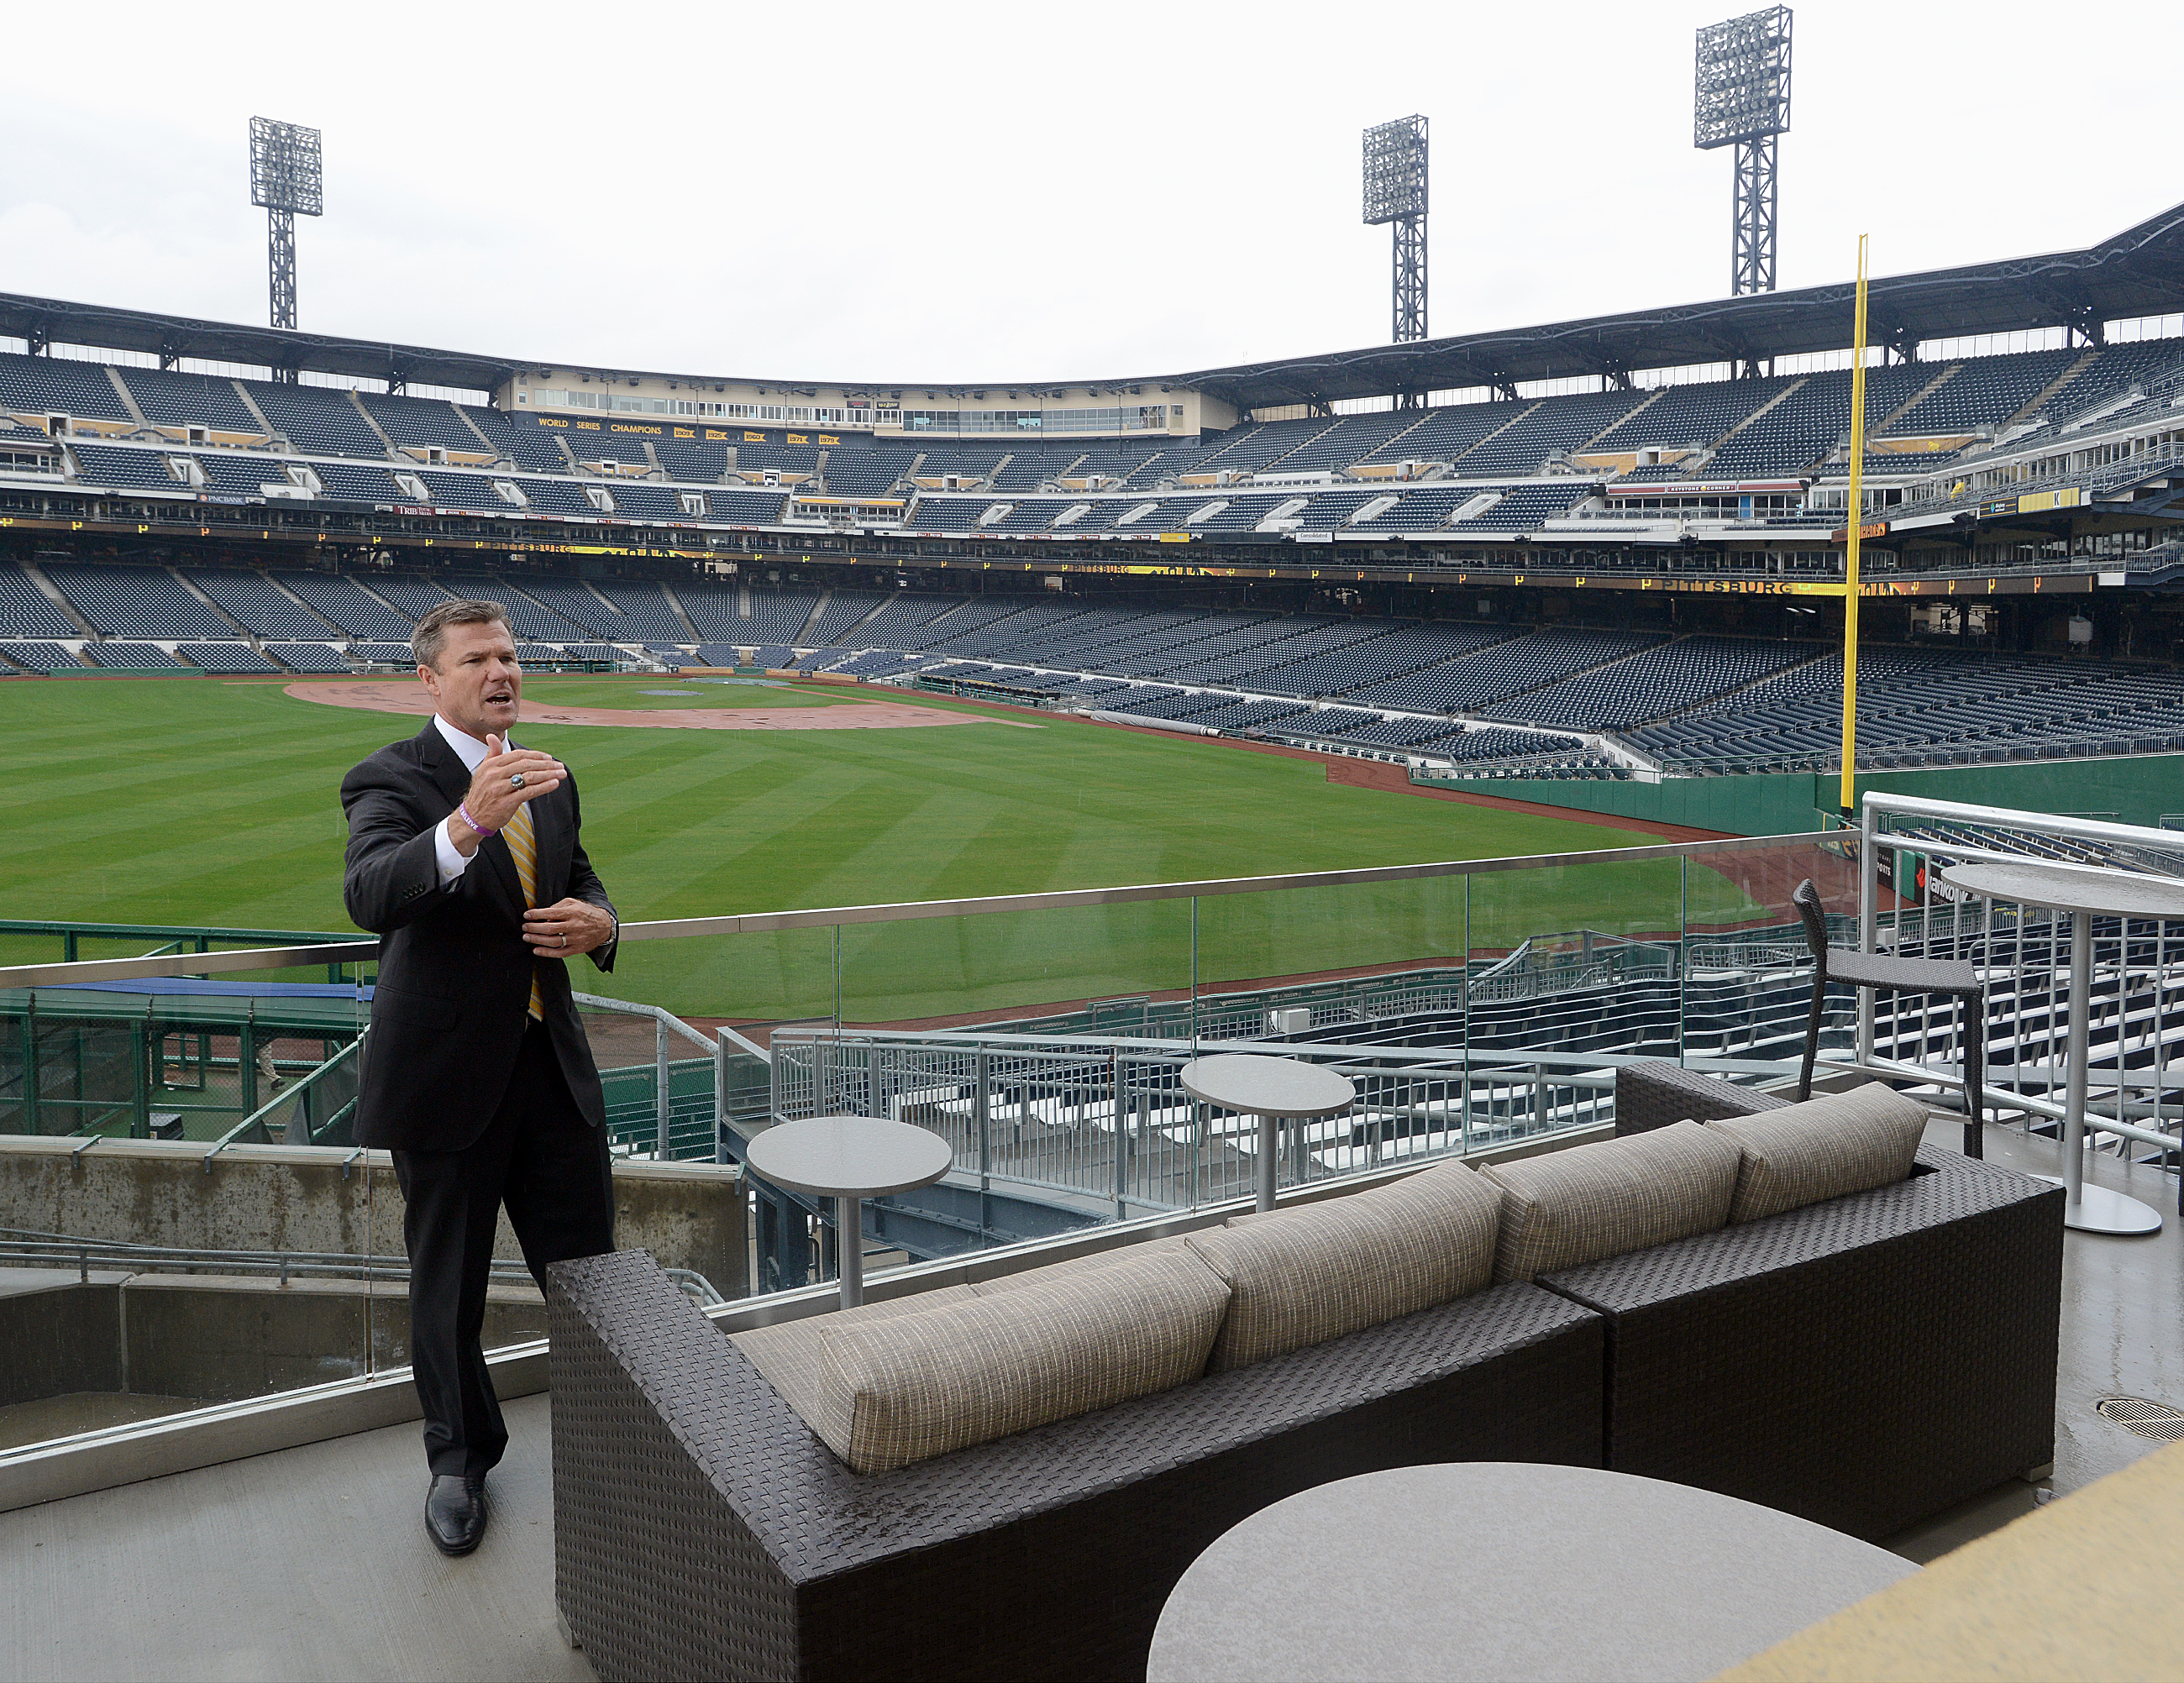 20150409radPNCParkLocal05-4 Pirates President Frank Coonelly shows of The Porch, a new seating area for groups of 25, in center field outside the Hall of Fame Club at PNC Park. It's already been sold out for the season.